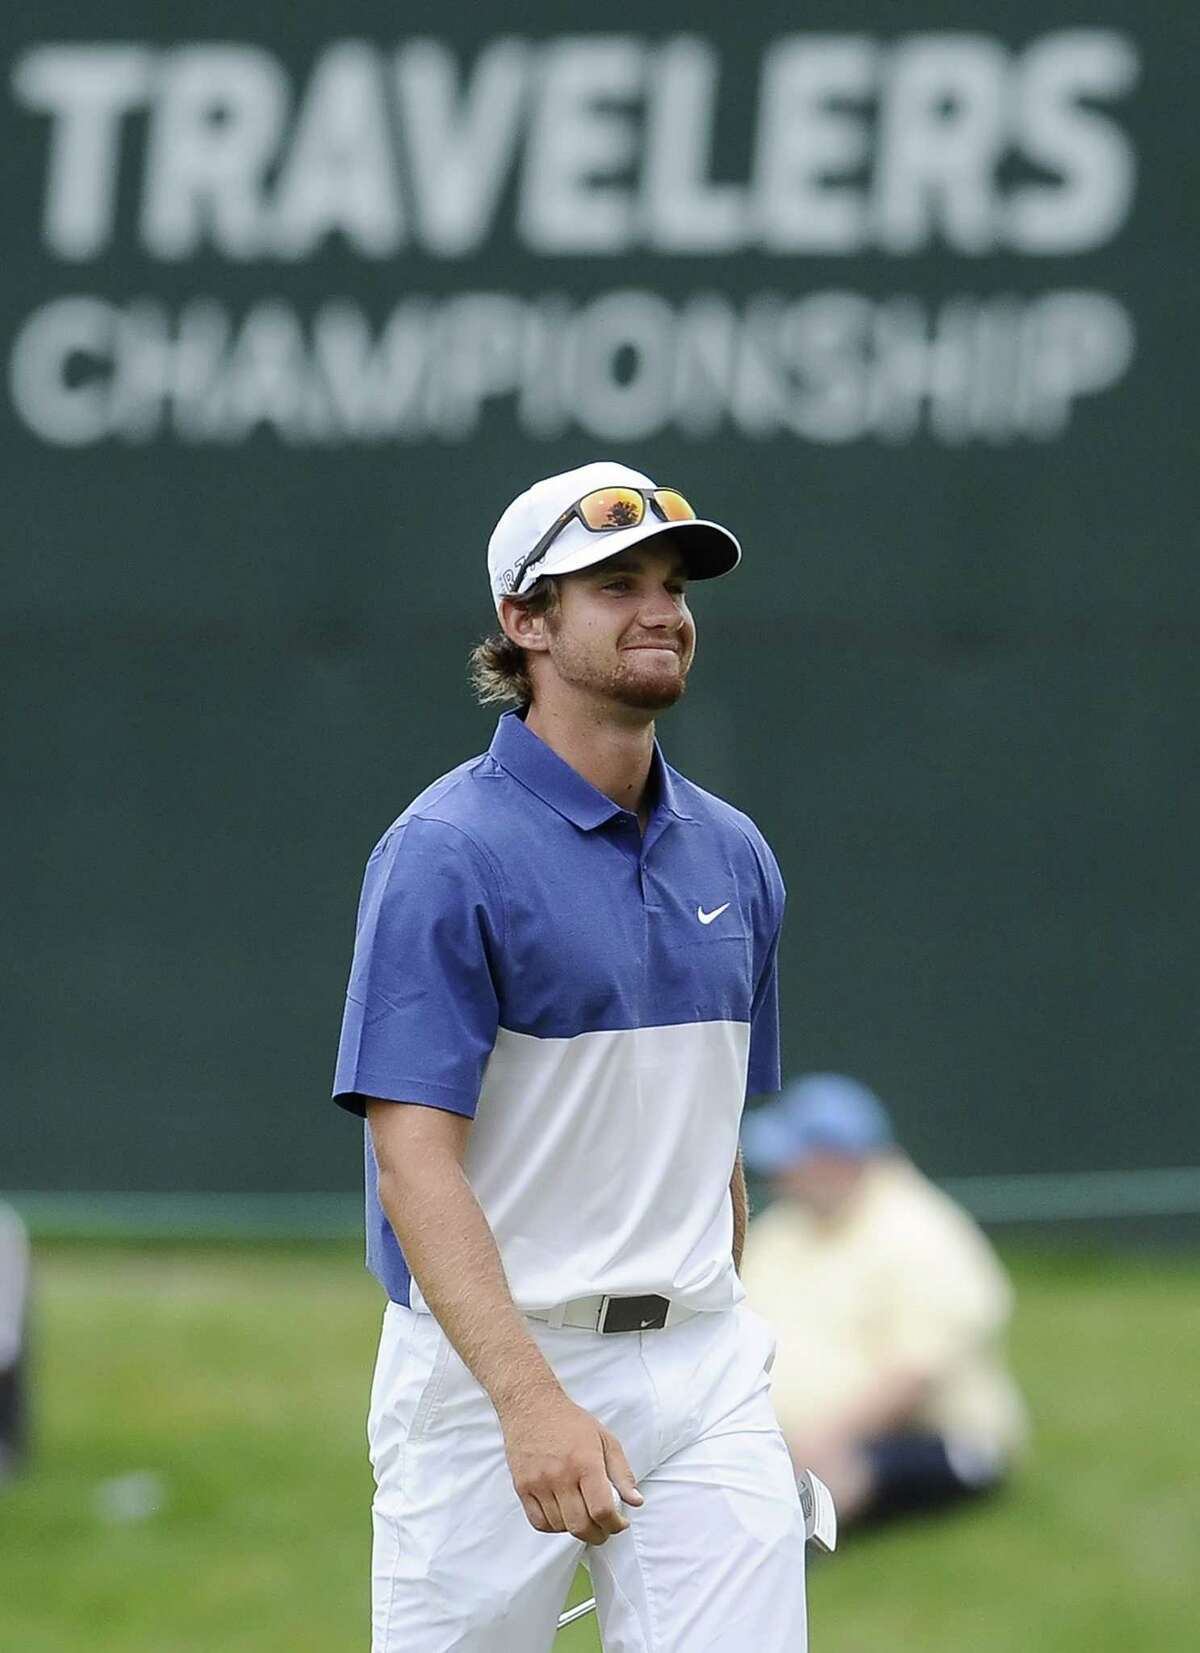 Patrick Rodgers reacts to a birdie putt on the 17th hole during the third round of the Travelers Championship on Saturday in Cromwell.